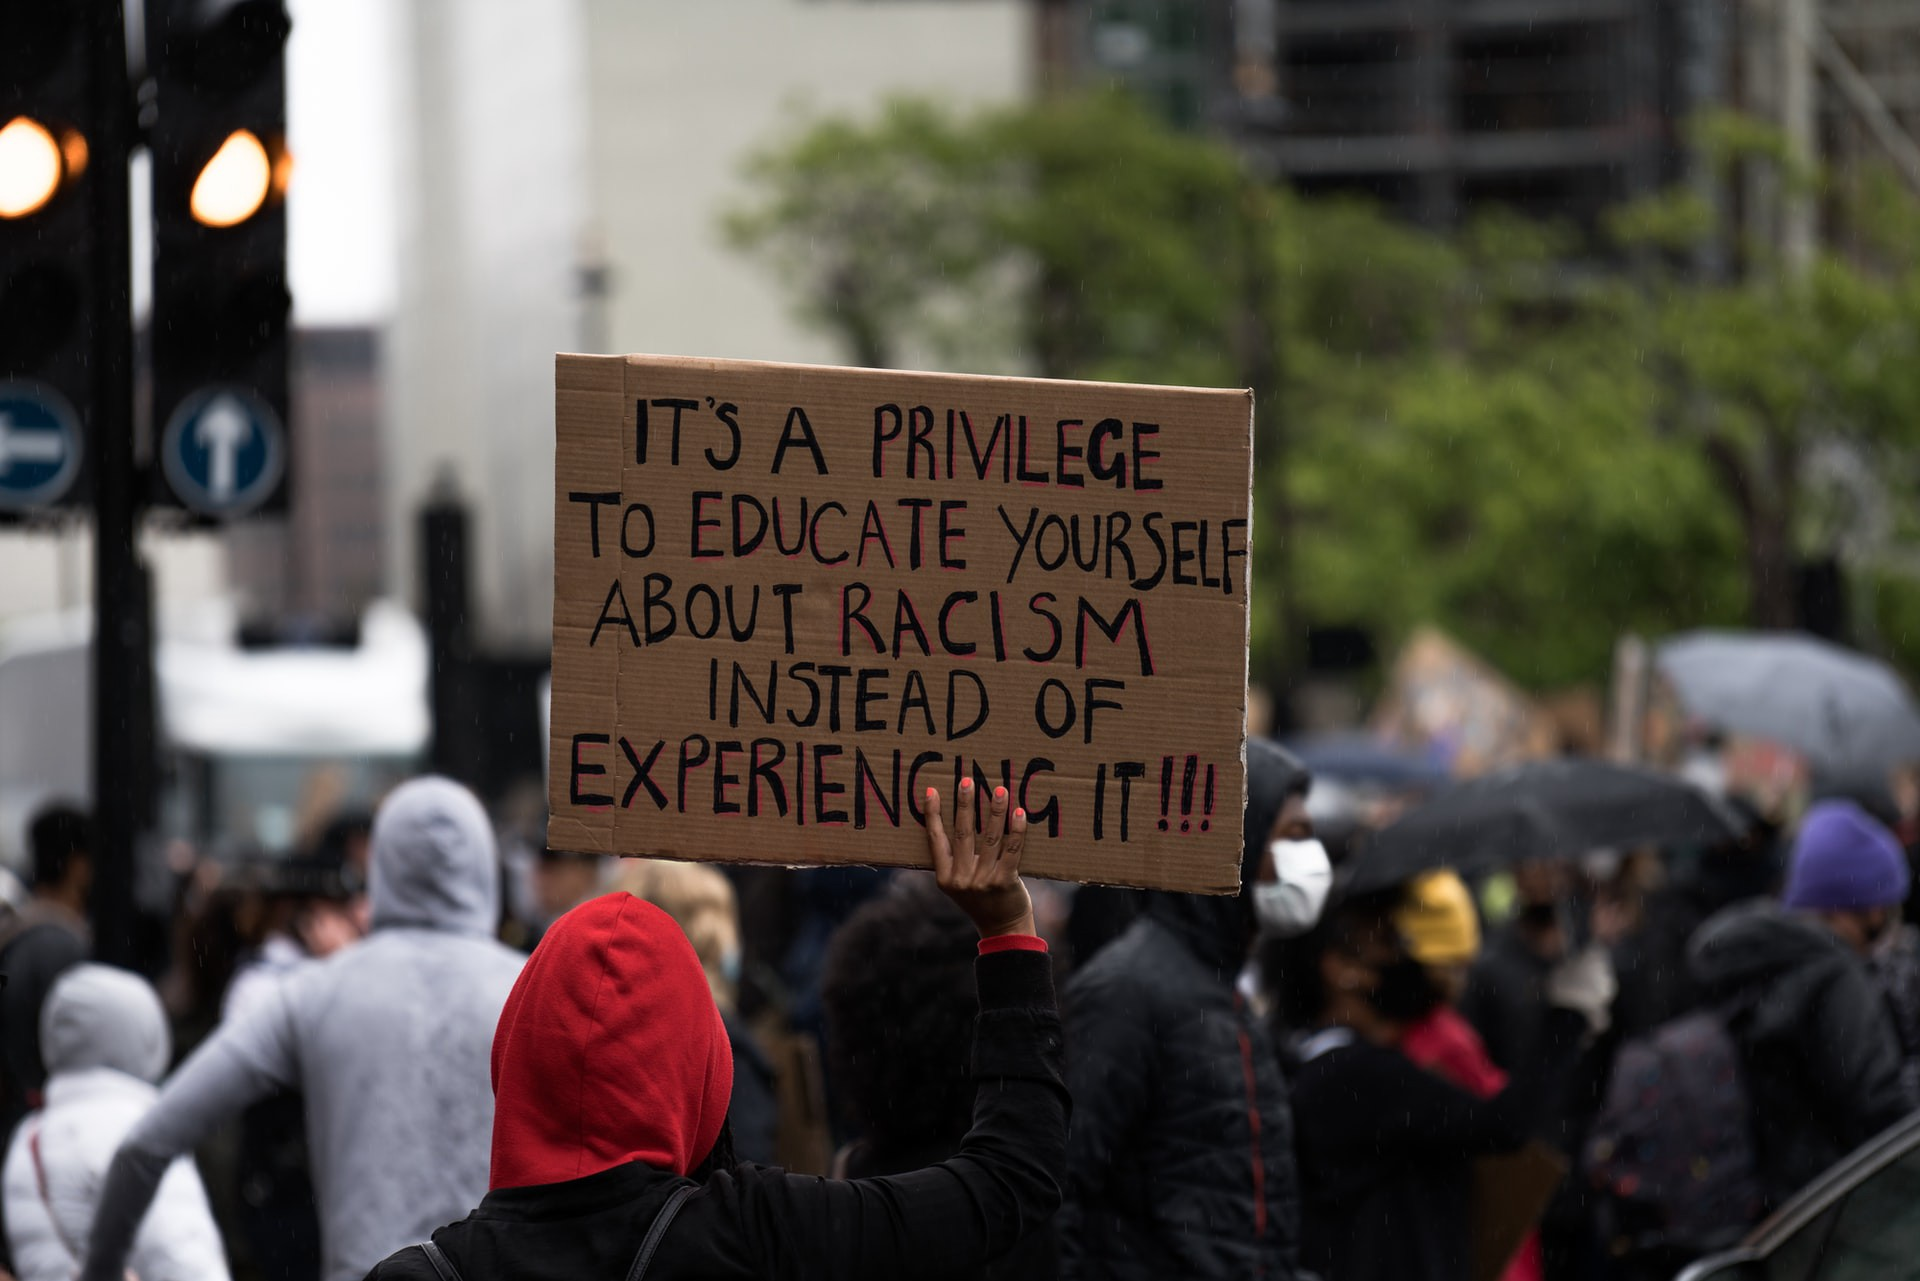 It's a privilege to educate yourself about racism instead of experiencing it.